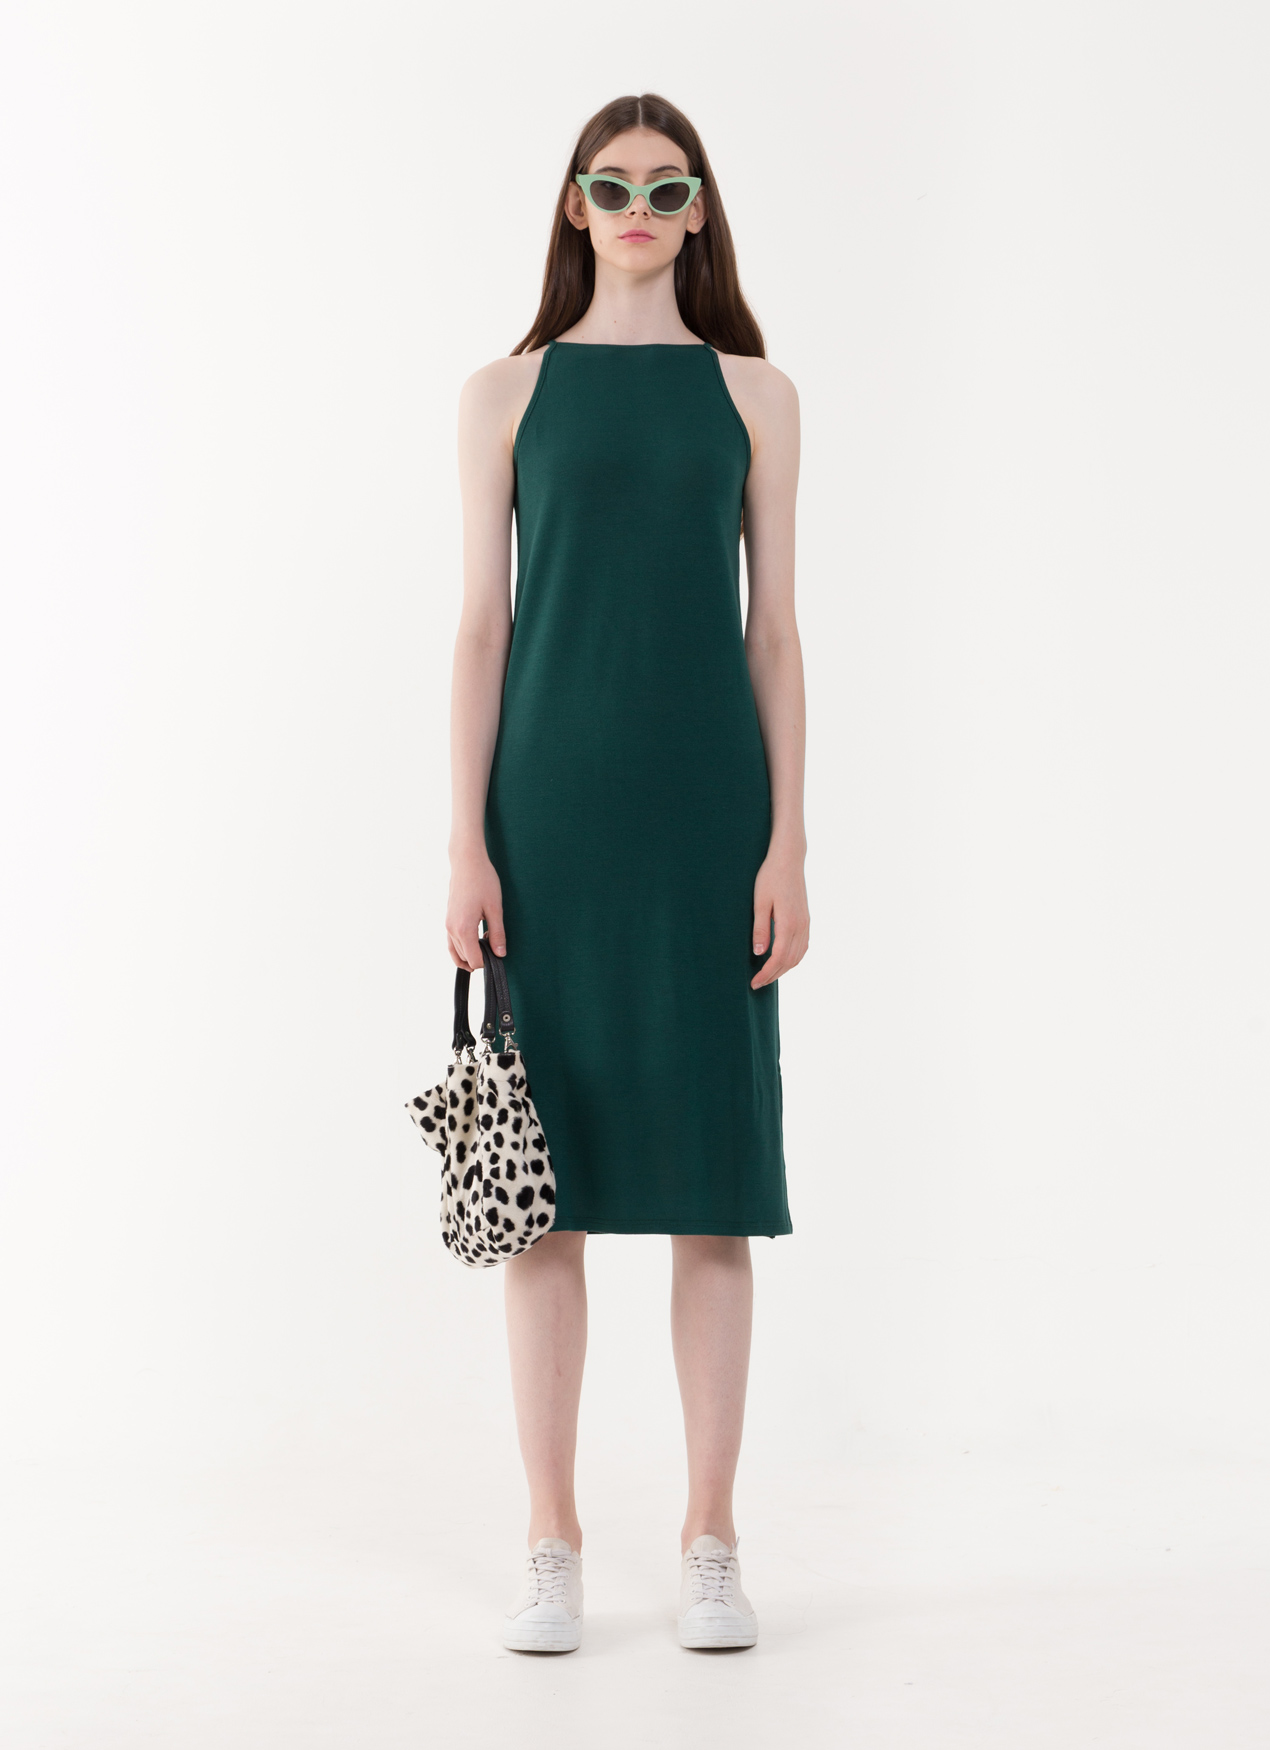 BOWN Teagan Dress - Green